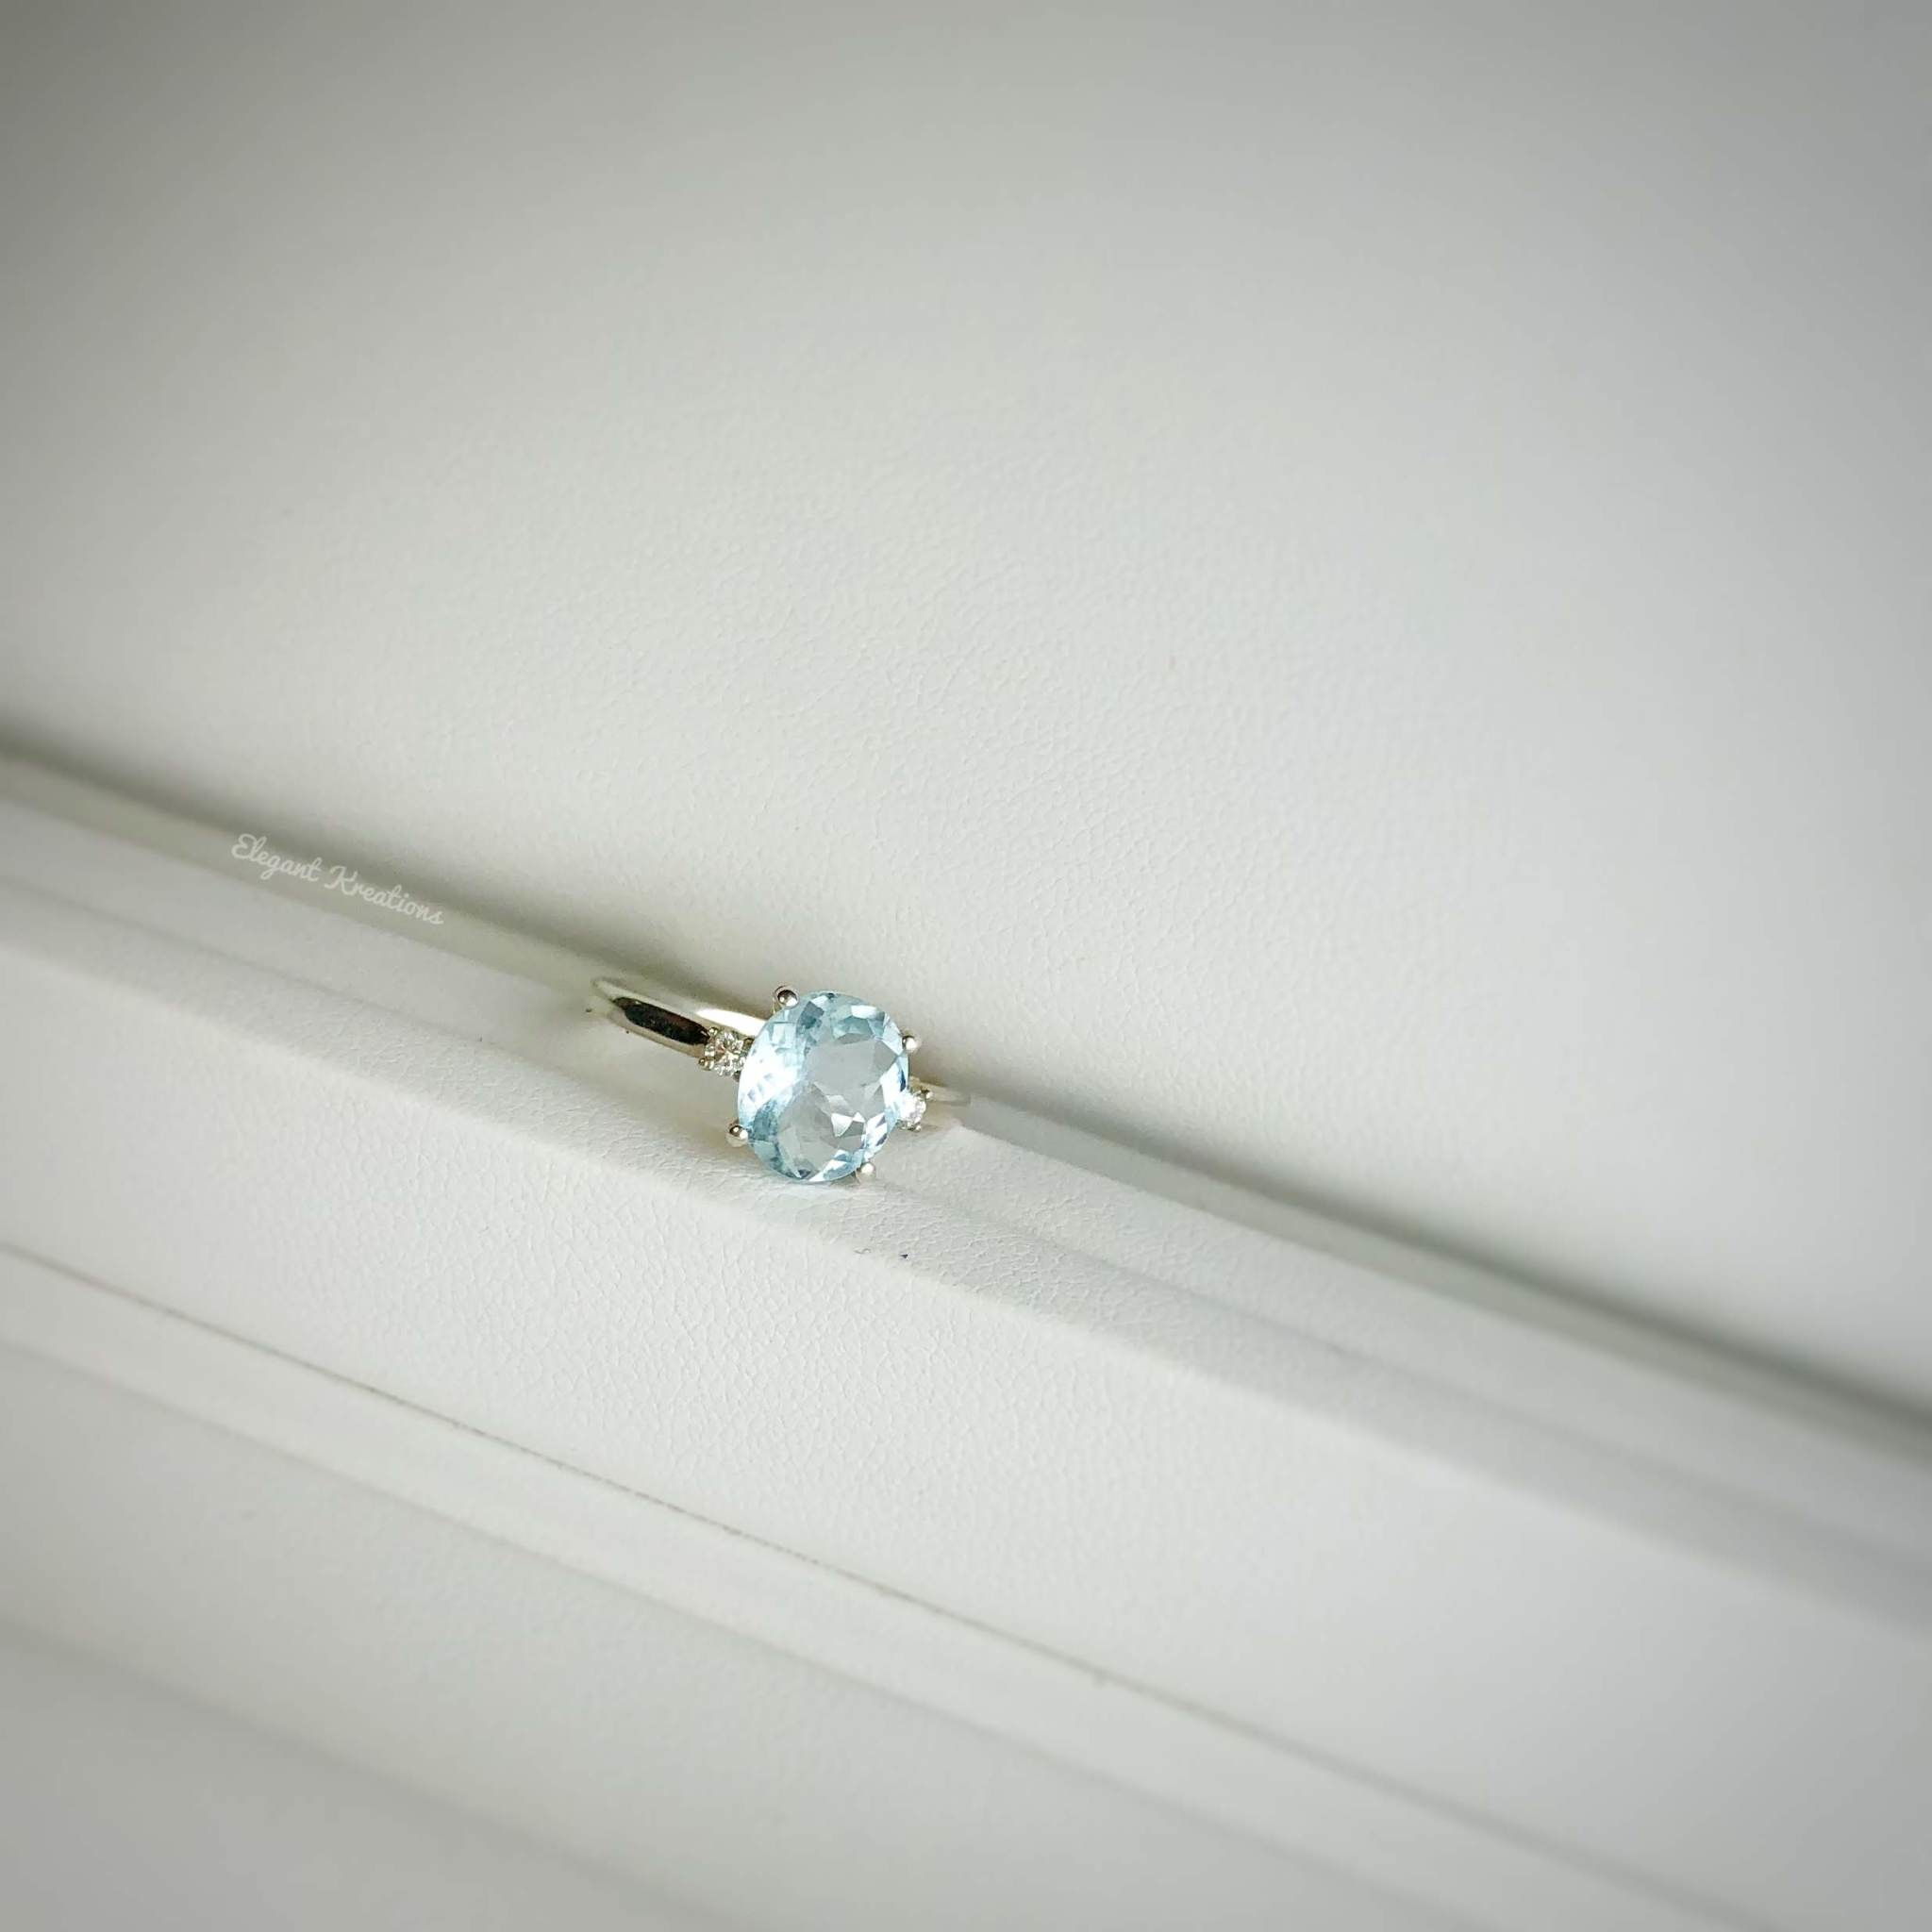 SS 1.5ct aquamarine and Diamond Ring